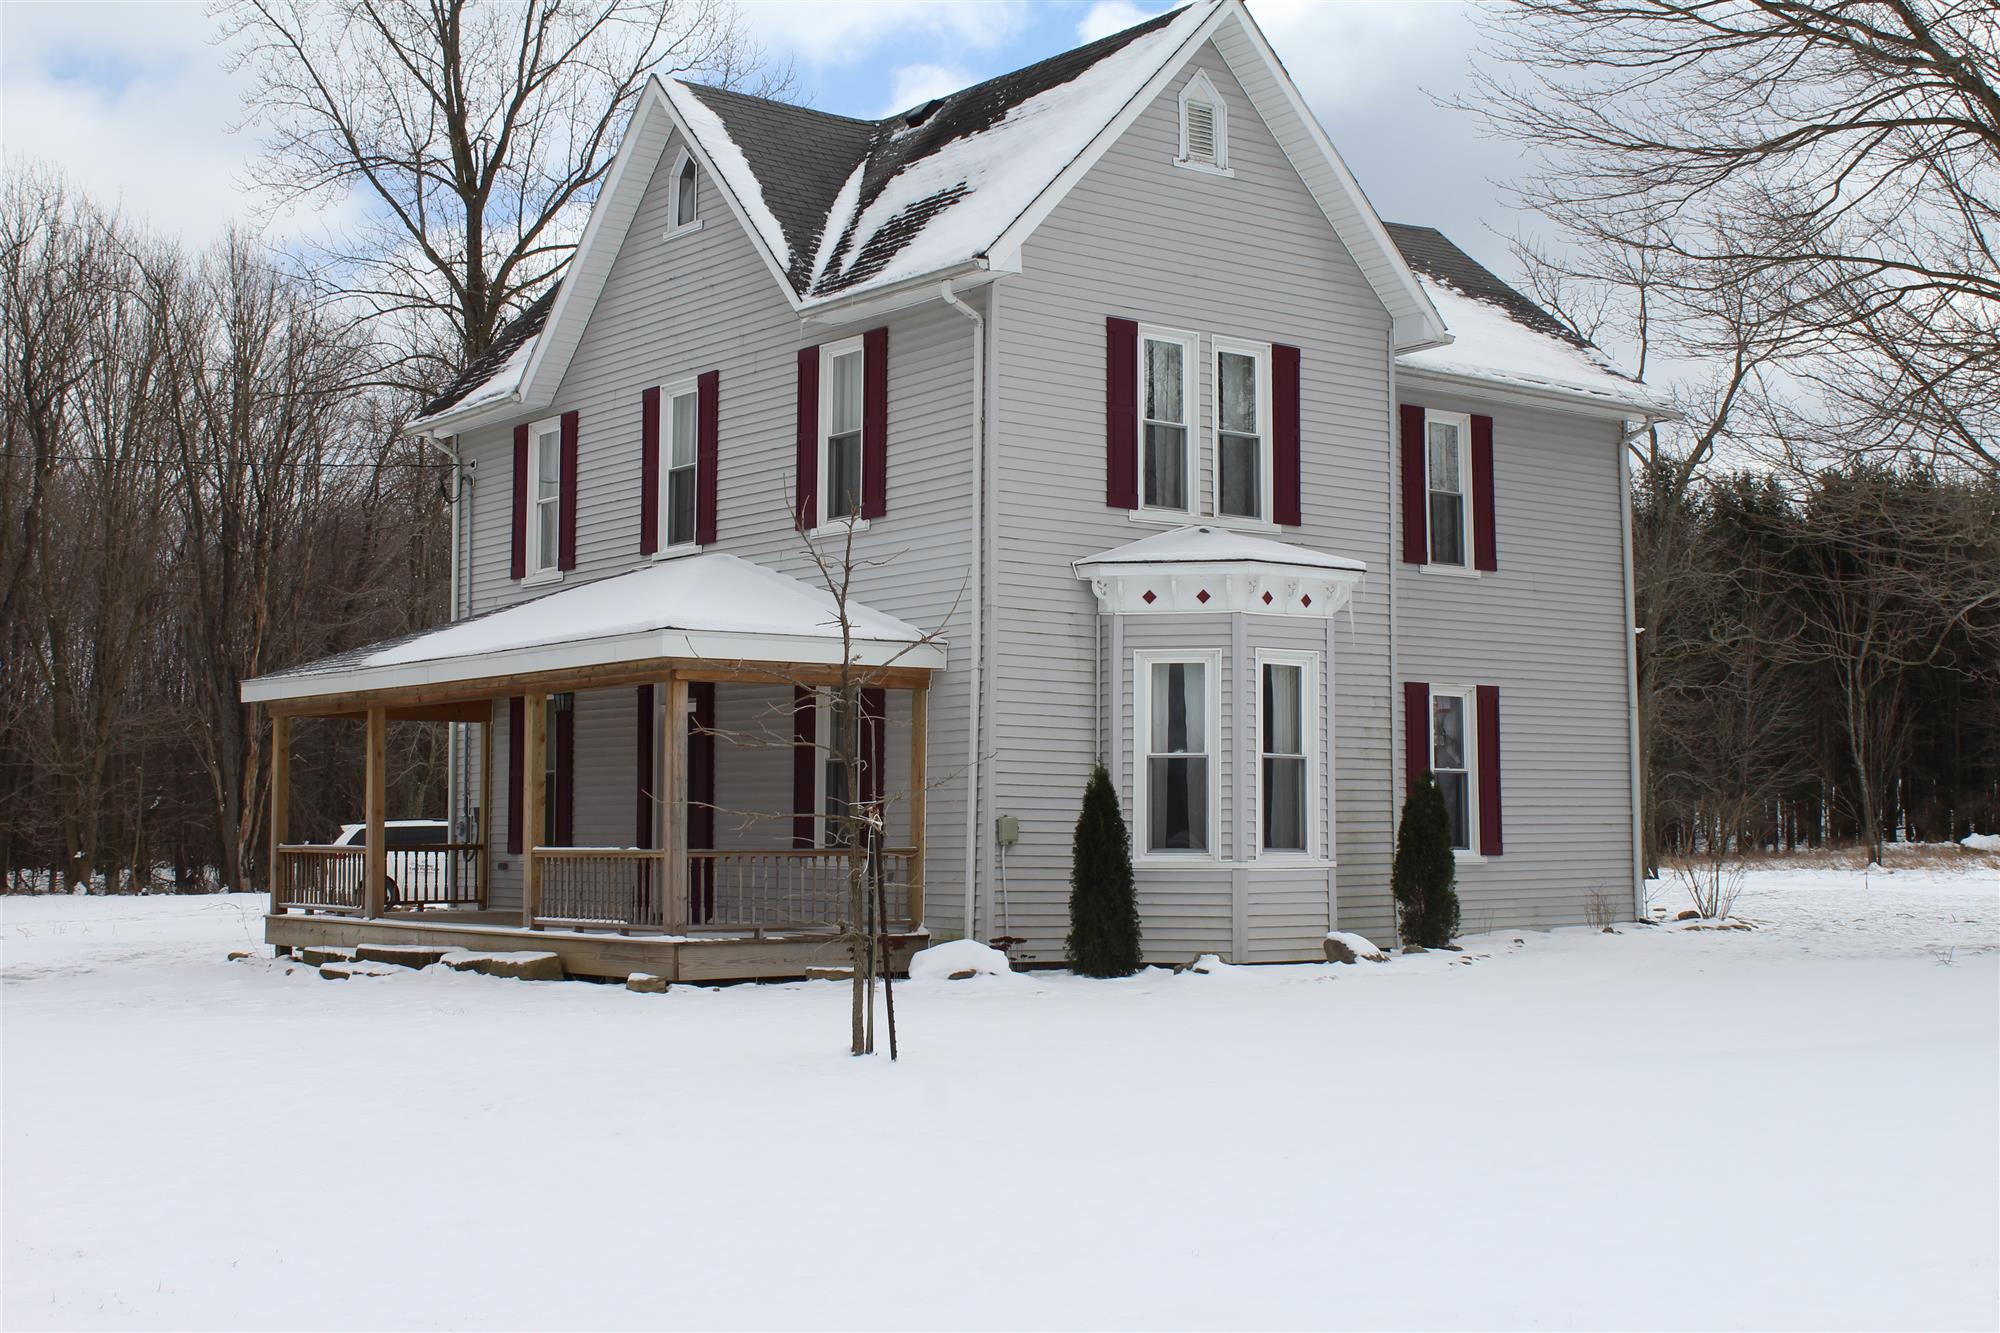 New Listing in Allegheny Twp (Butler County) ! -  410 Foxburg Road, Parker  Move right into this Victorian farmhouse with ...